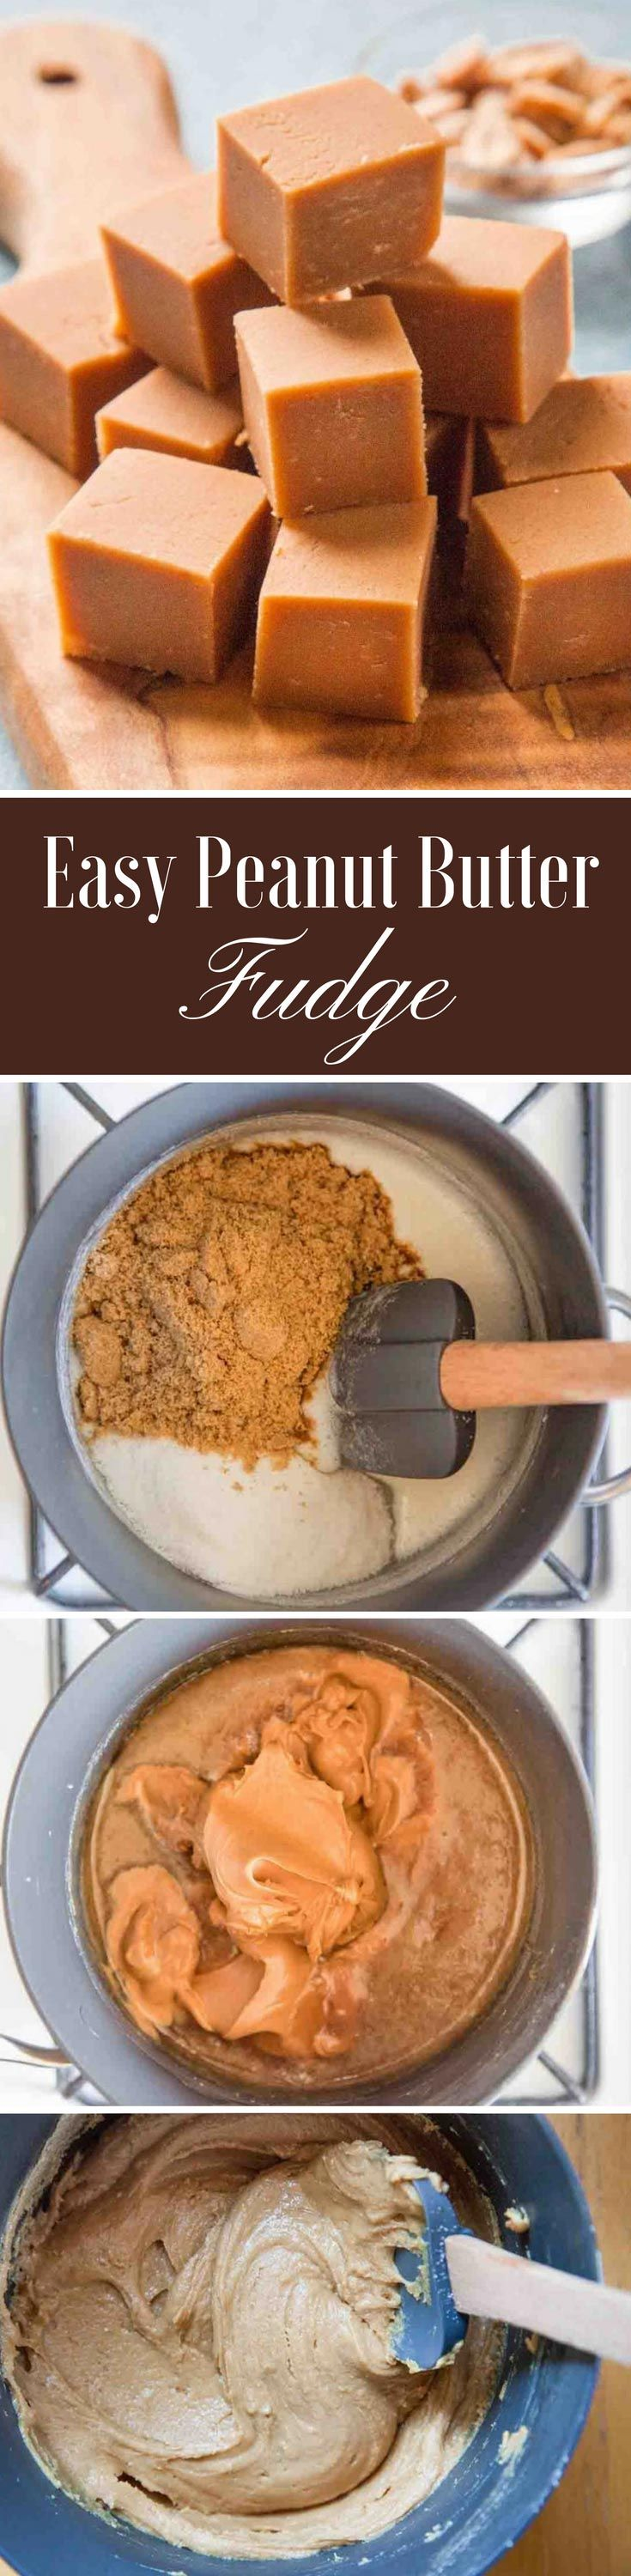 Quick and EASY peanut butter fudge! Make on the stovetop and pour into a pan. Takes 15 minutes.